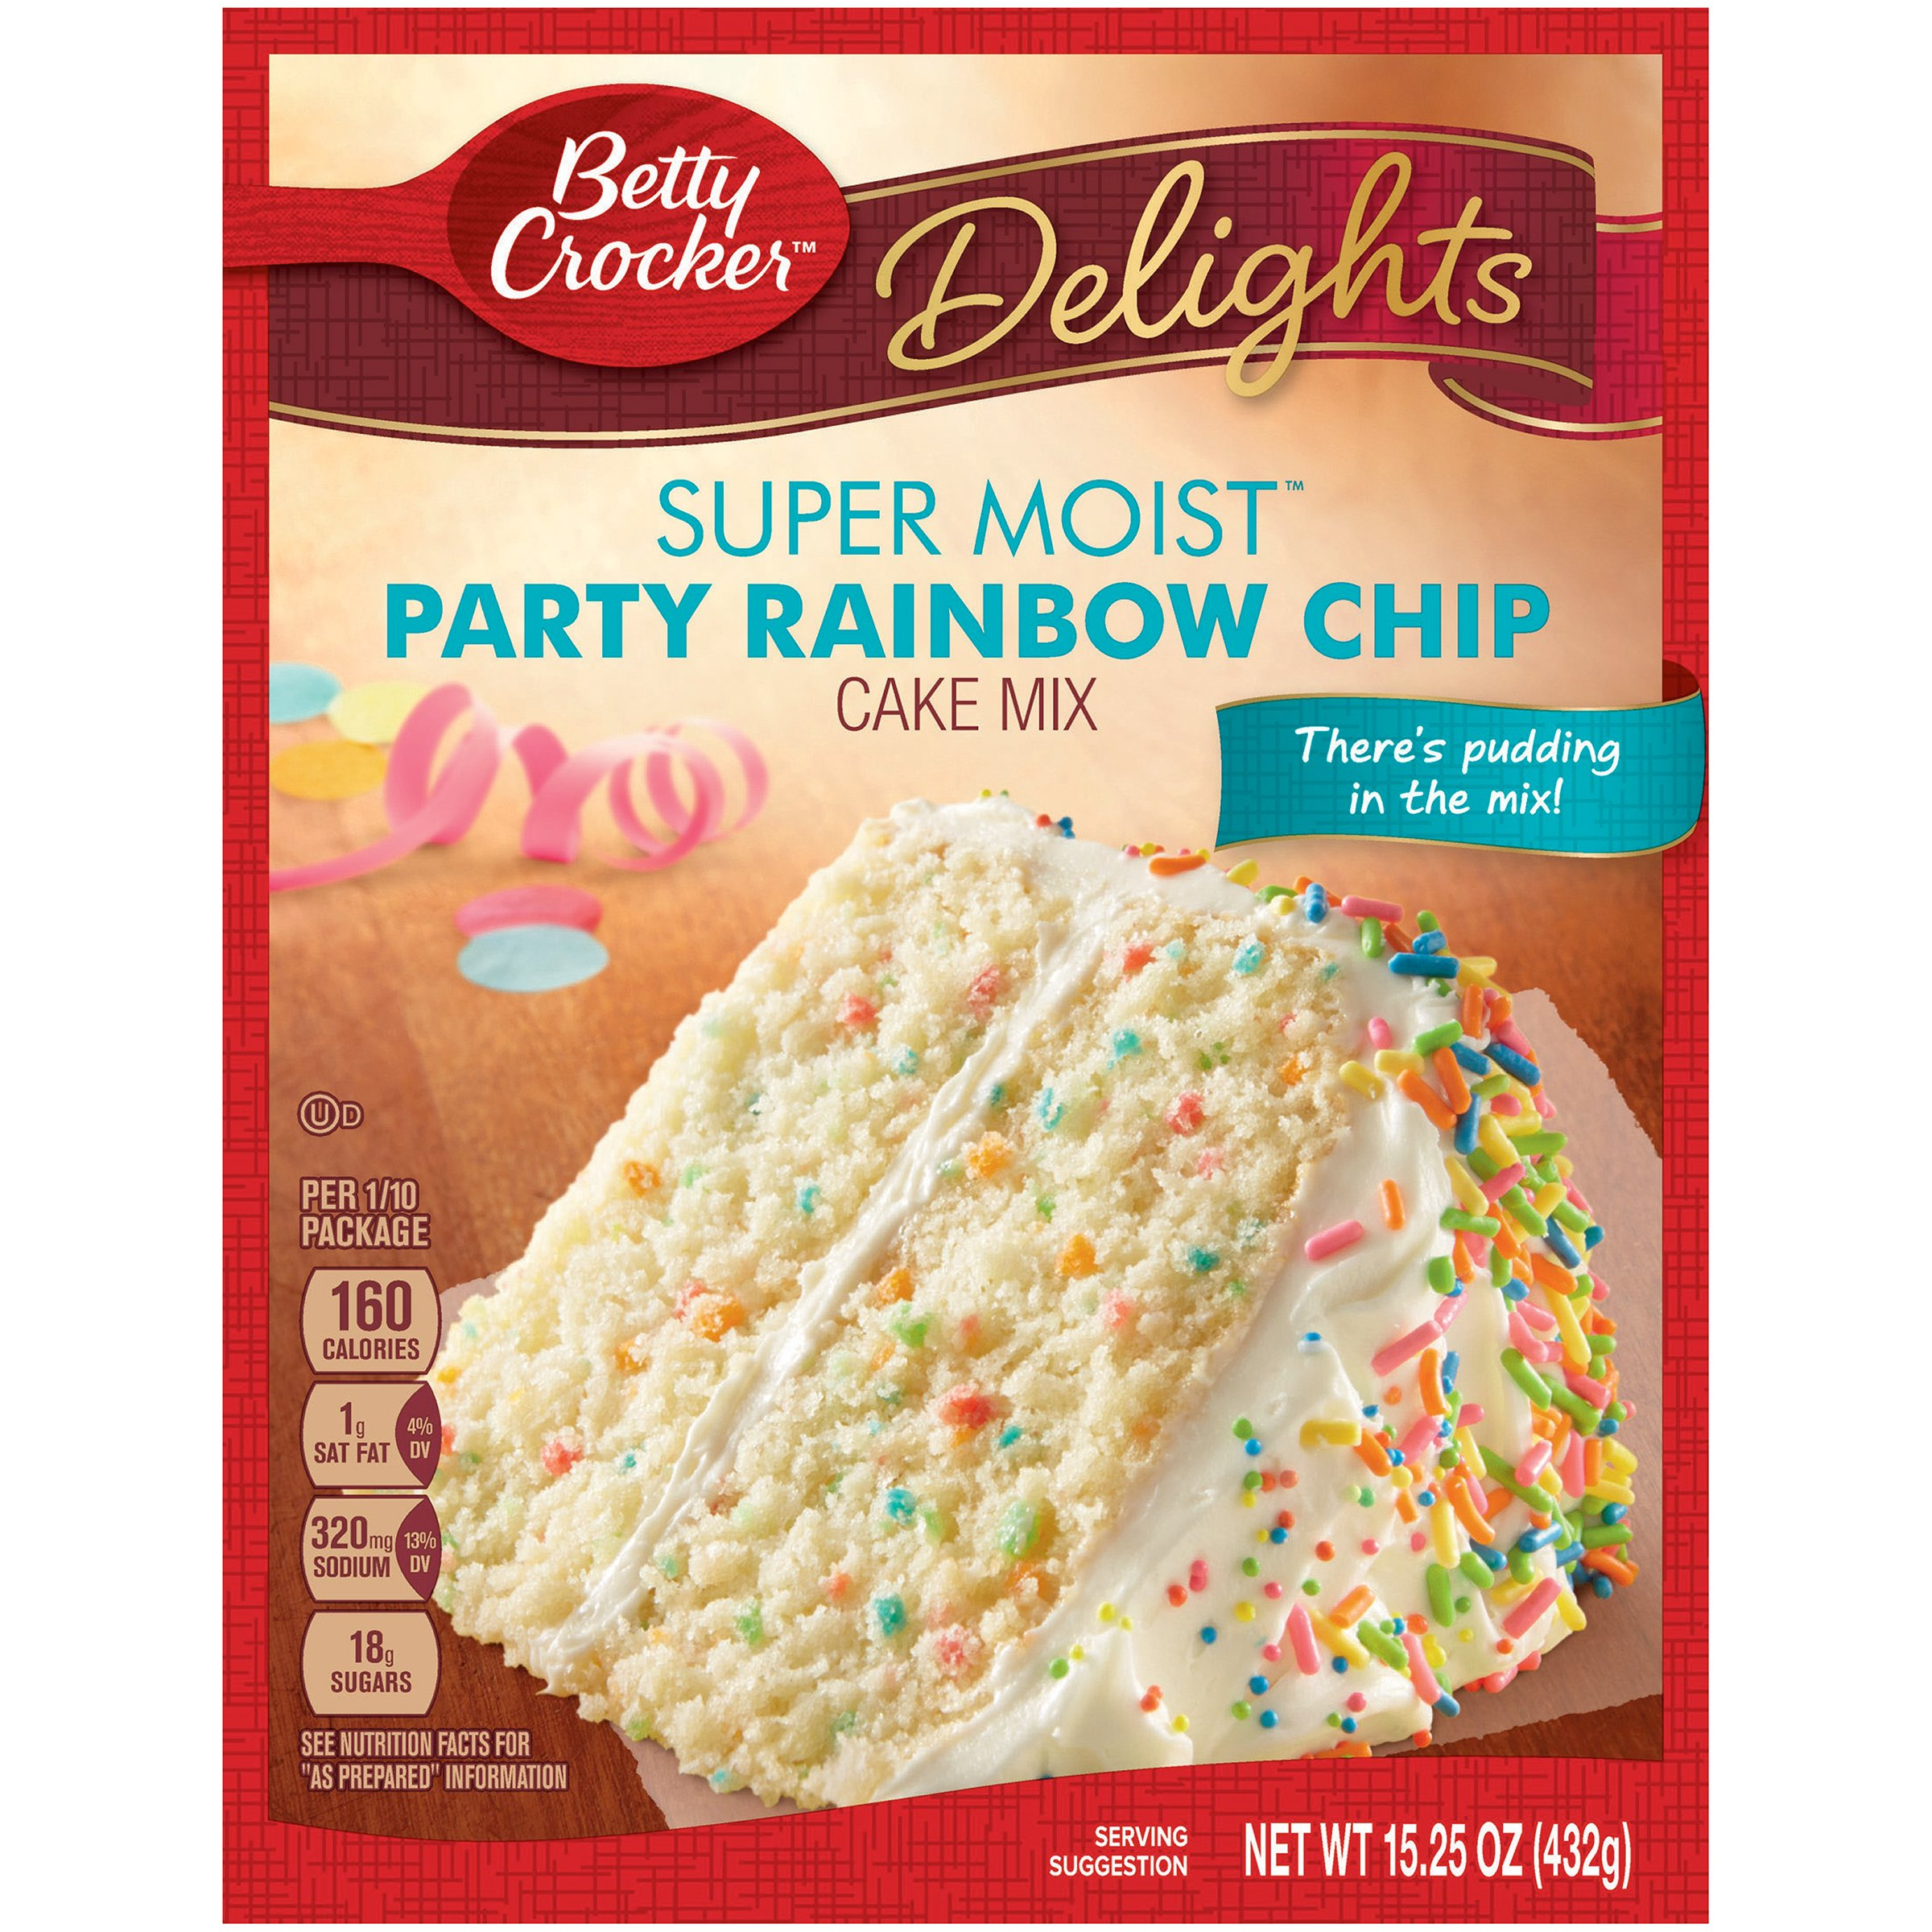 Betty Crocker Delights Super Moist Party Rainbow Chip Cake Mix 15.25 oz (Pack of 2)